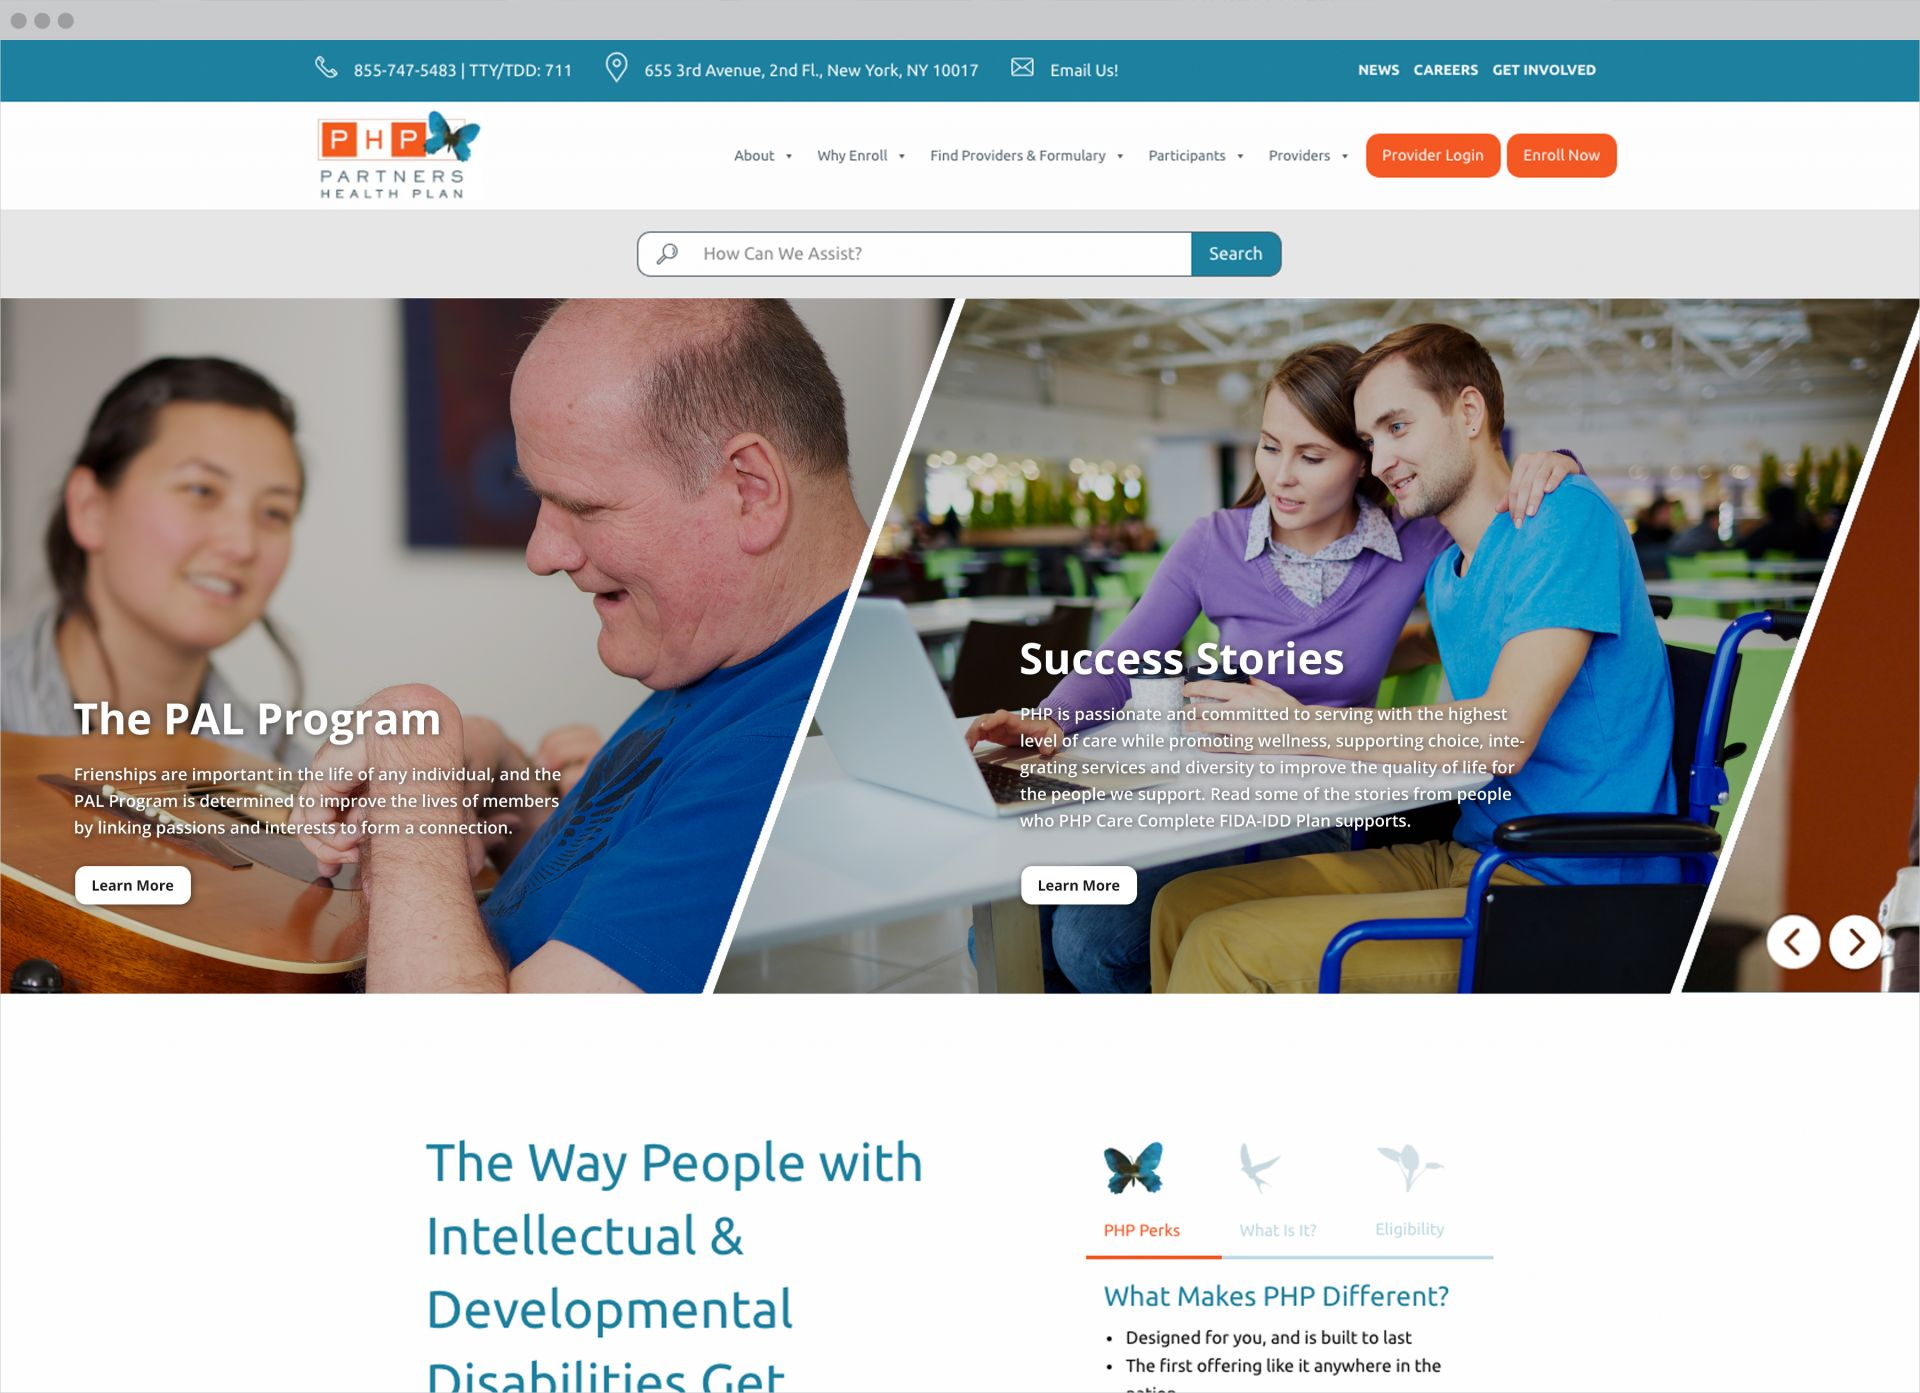 CMI Website Design